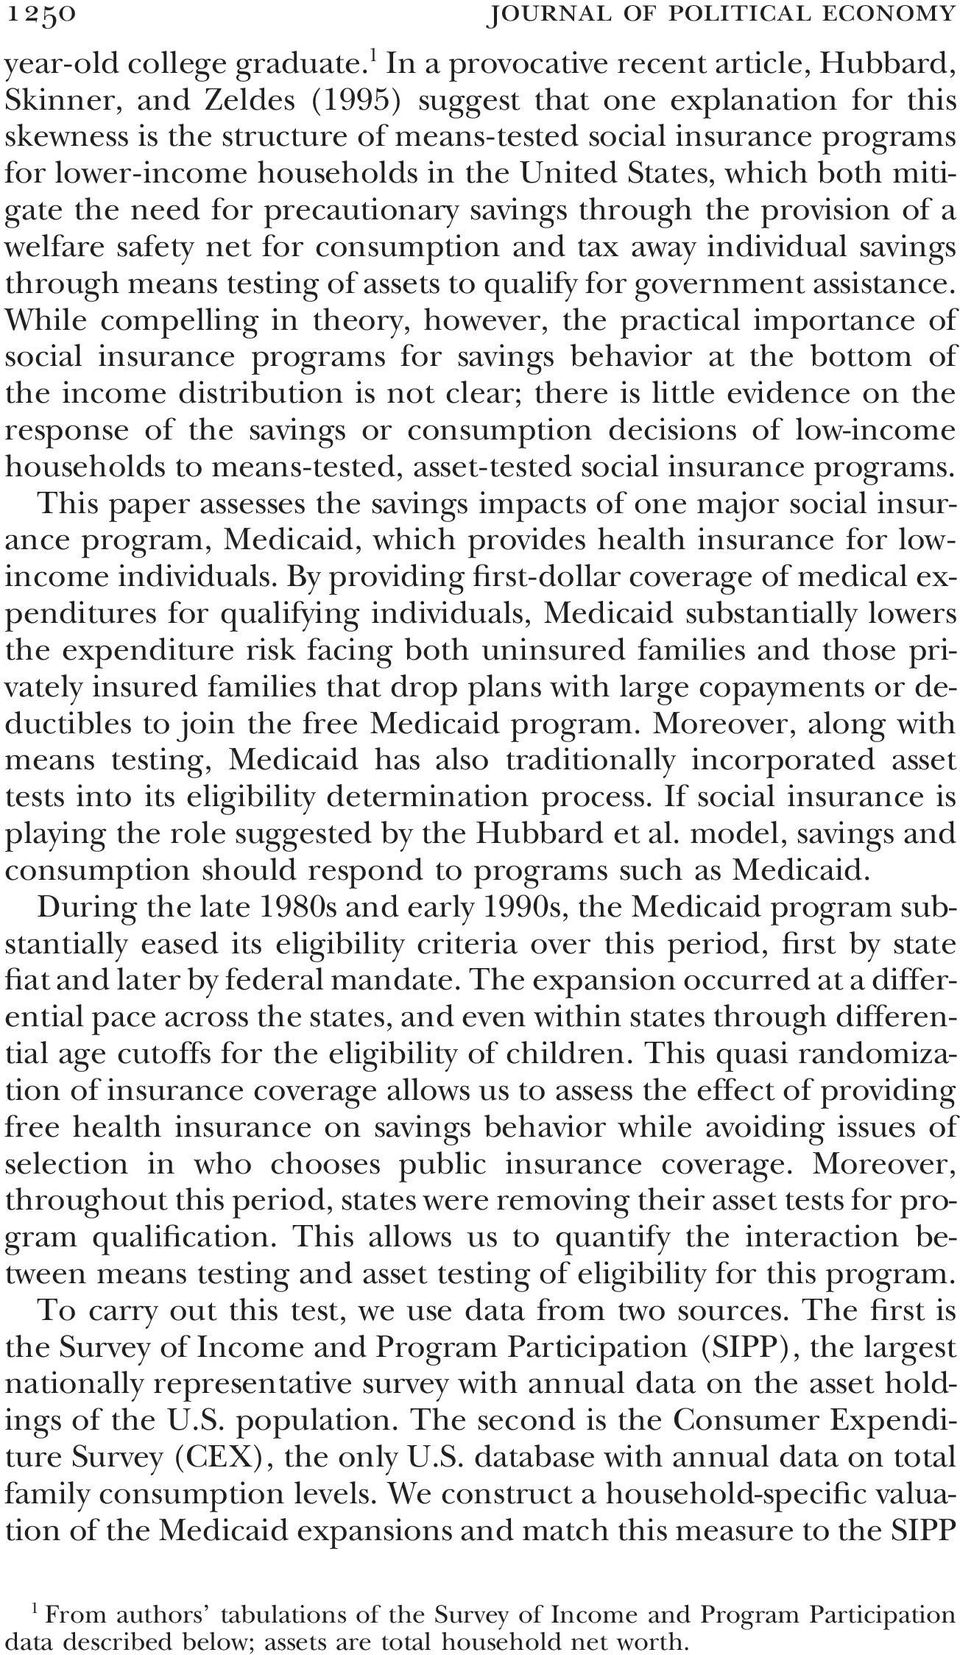 households in the United States, which both mitigate the need for precautionary savings through the provision of a welfare safety net for consumption and tax away individual savings through means